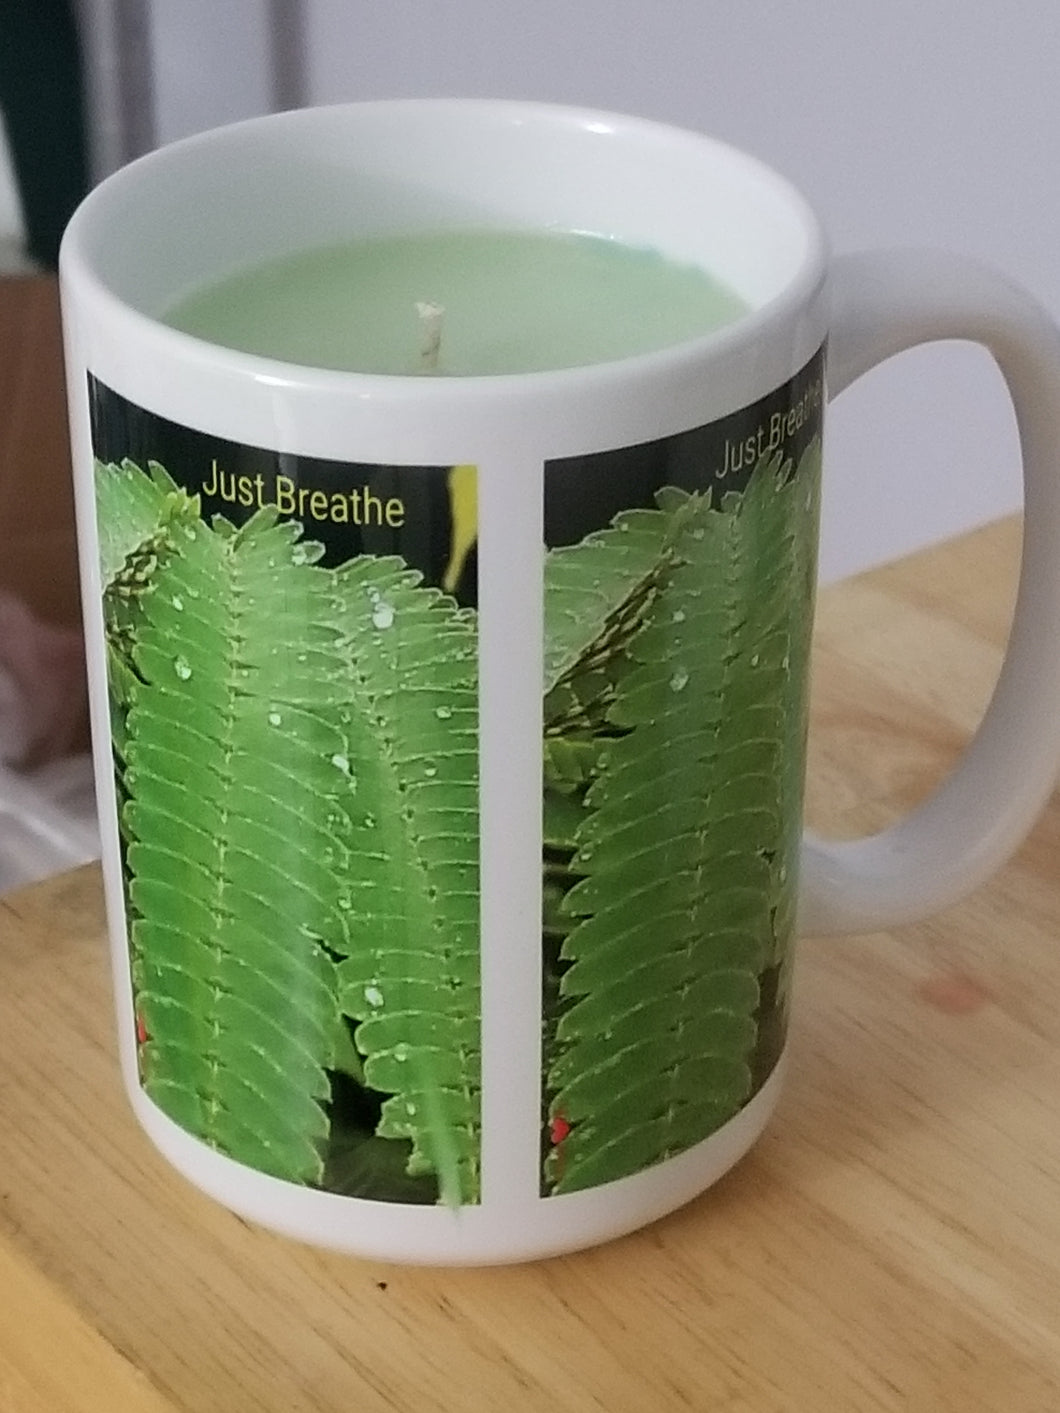 Just Breathe Bamboo Candle Mug